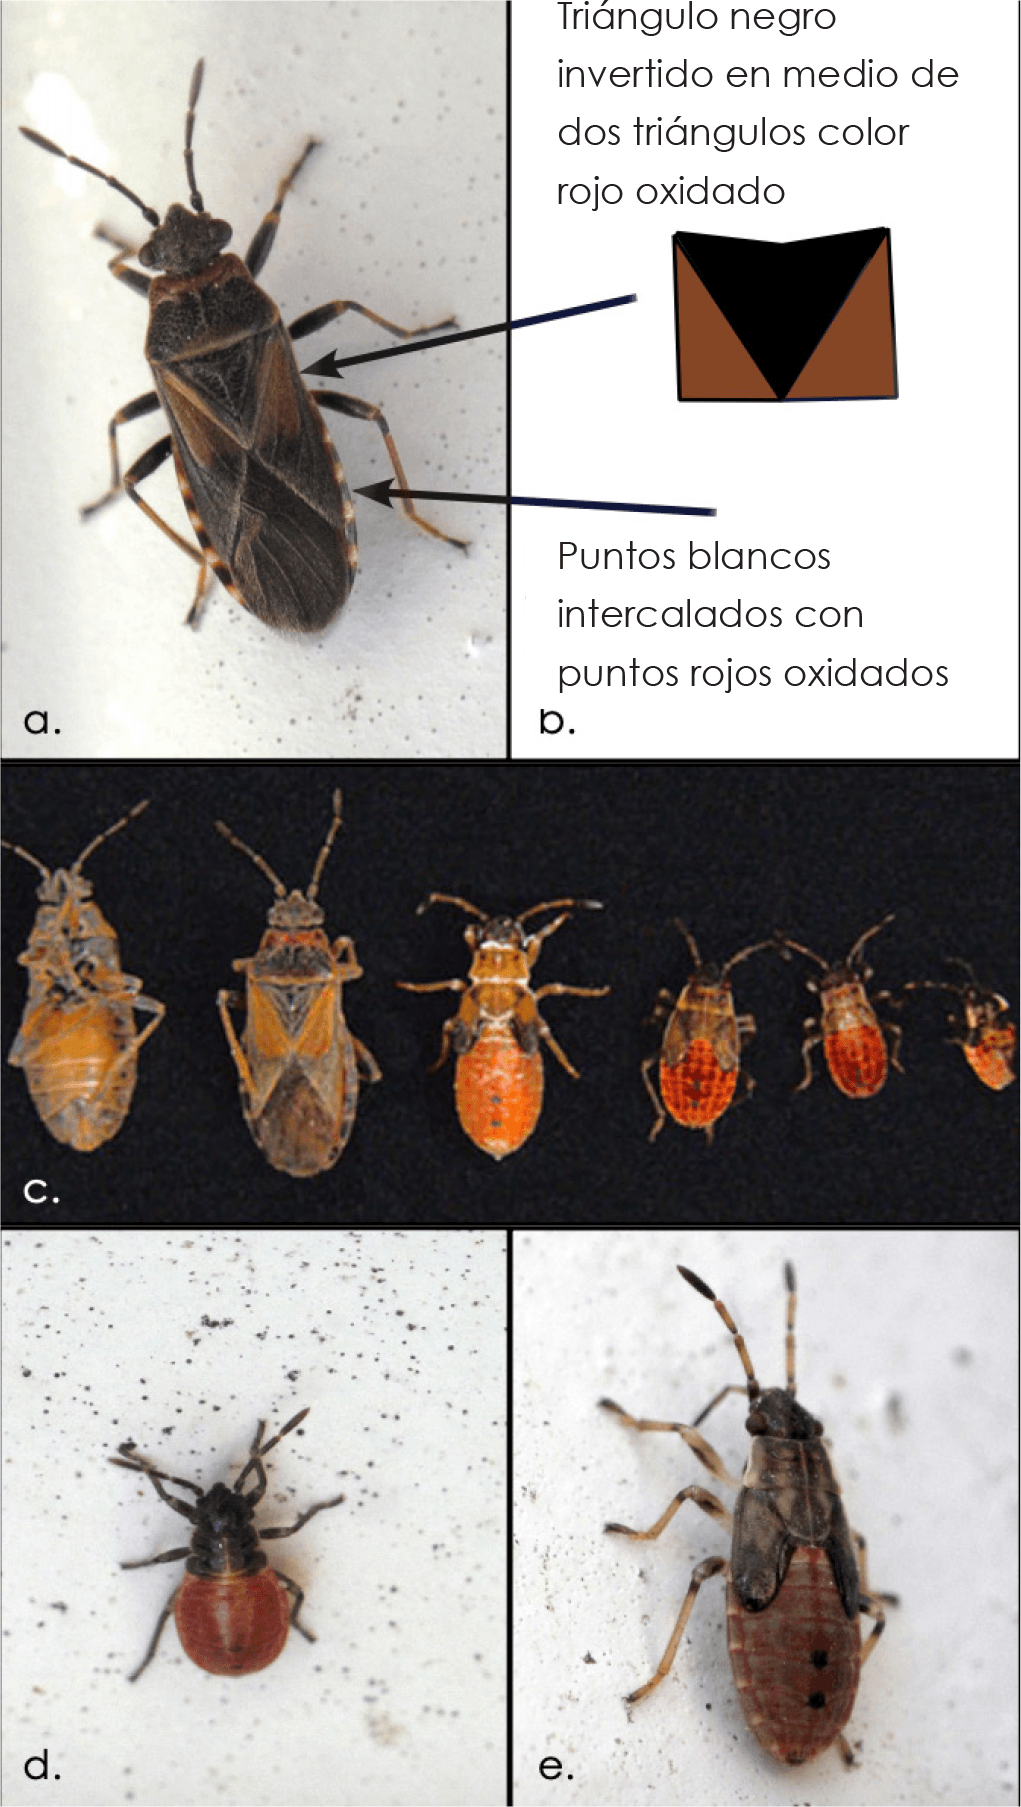 Fig. 2a - 2e. Elm seed bug adults with depiction of key identifying characteristics (2a - 2b). Adult and immature elm seed bugs (2c). Early- and latestage elm seed bug immatures (2d - 2e).